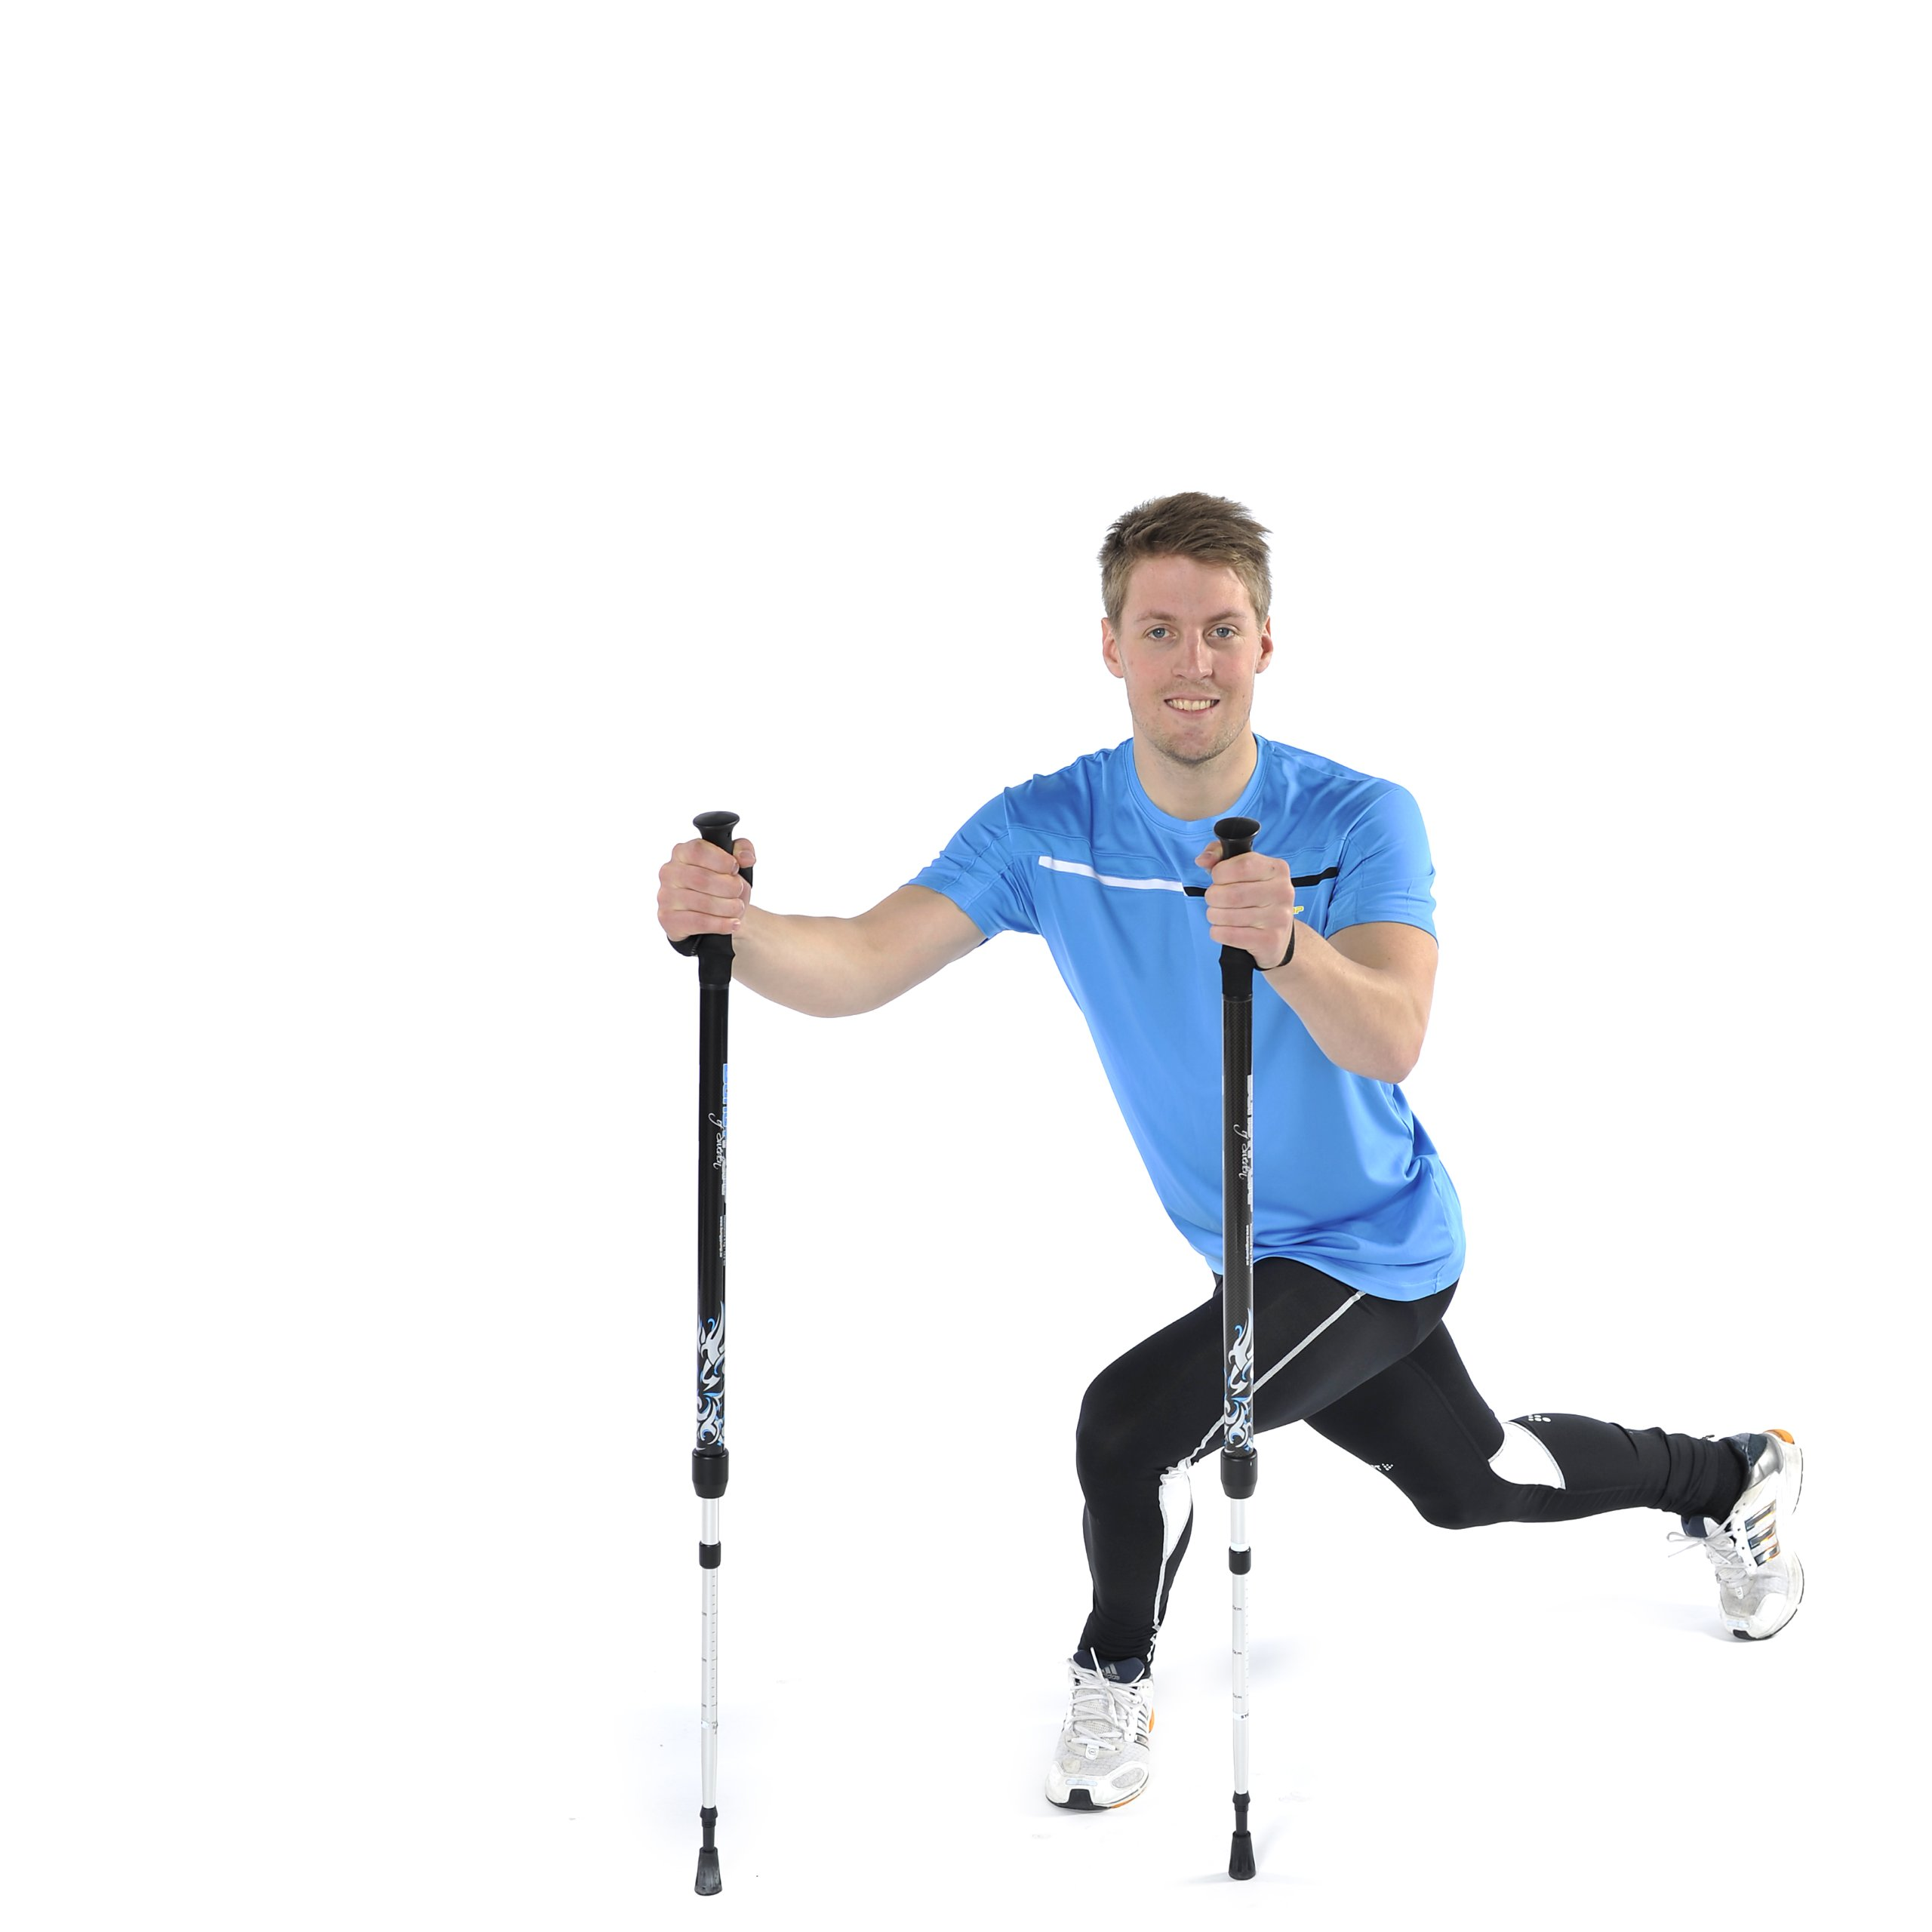 BungyPump Energy - Fitness Walking Poles with 13.2 lbs of Built-in Resistance, Easy Weight Loss while Walking, Used in The Biggest Loser by BungyPump (Image #4)